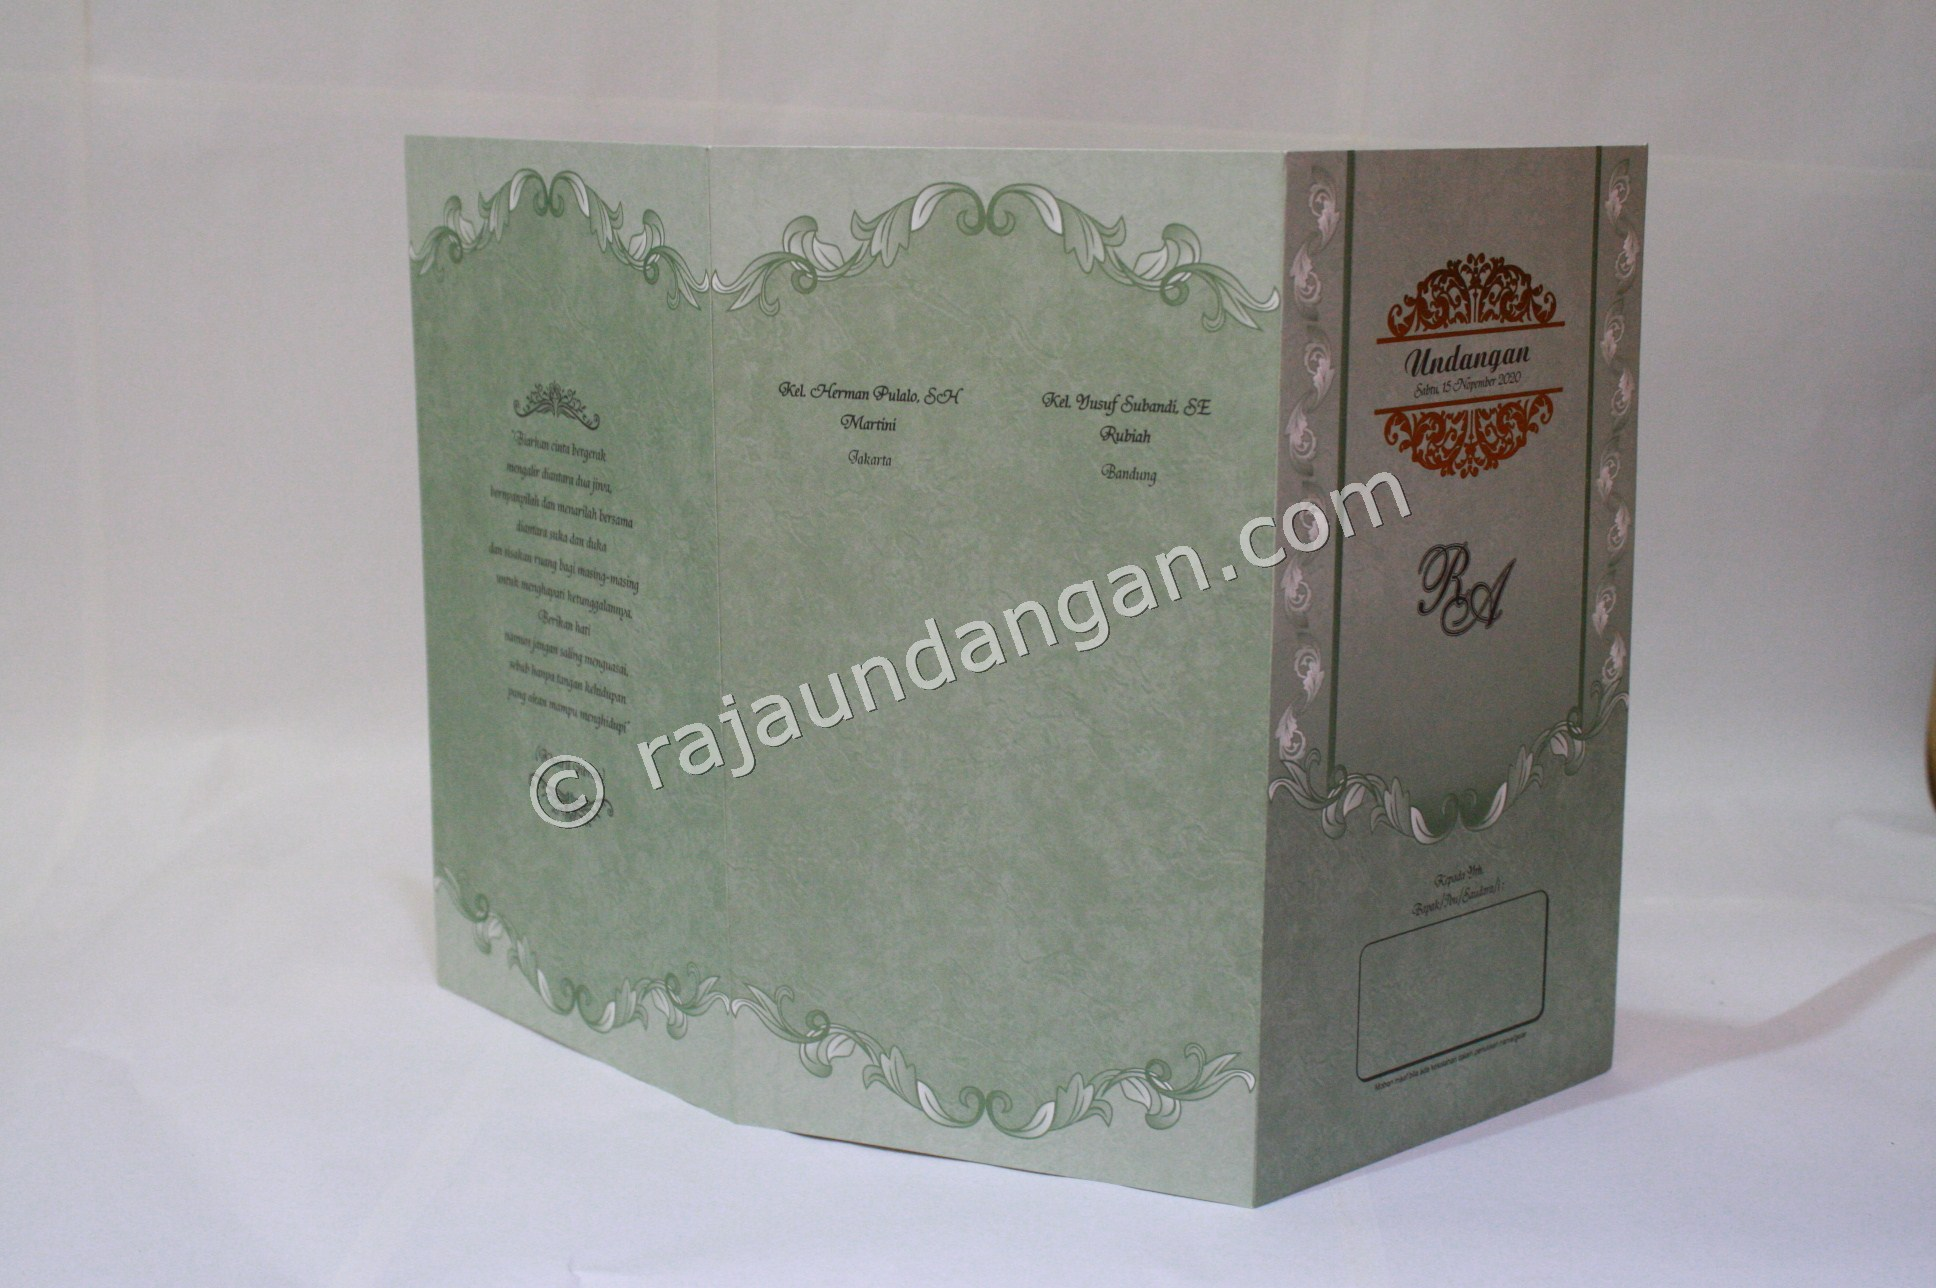 Undangan Pernikahan Softcover Tama dan Yani 3 - Membuat Wedding Invitations Simple di Dr. Sutomo